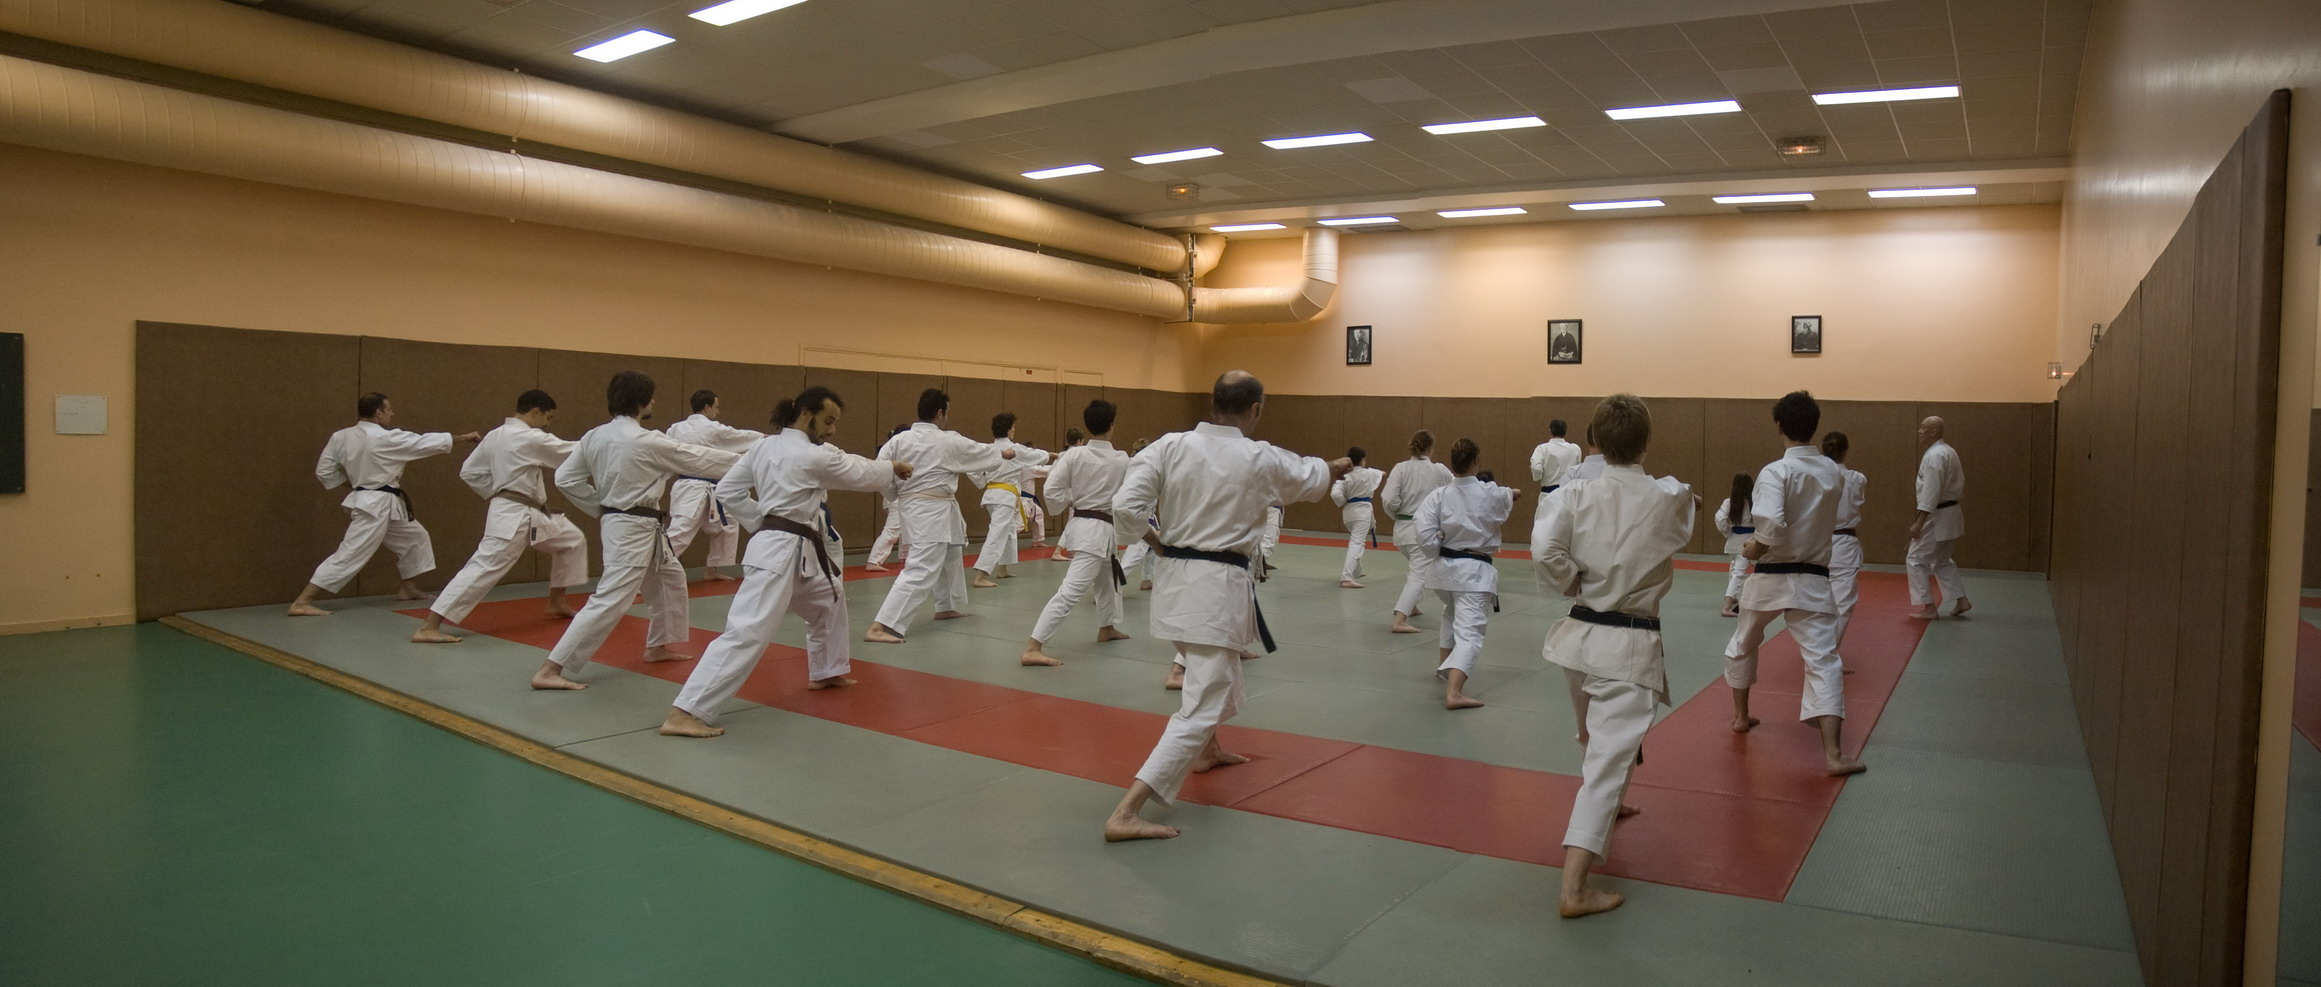 club karate 5eme arrondissement